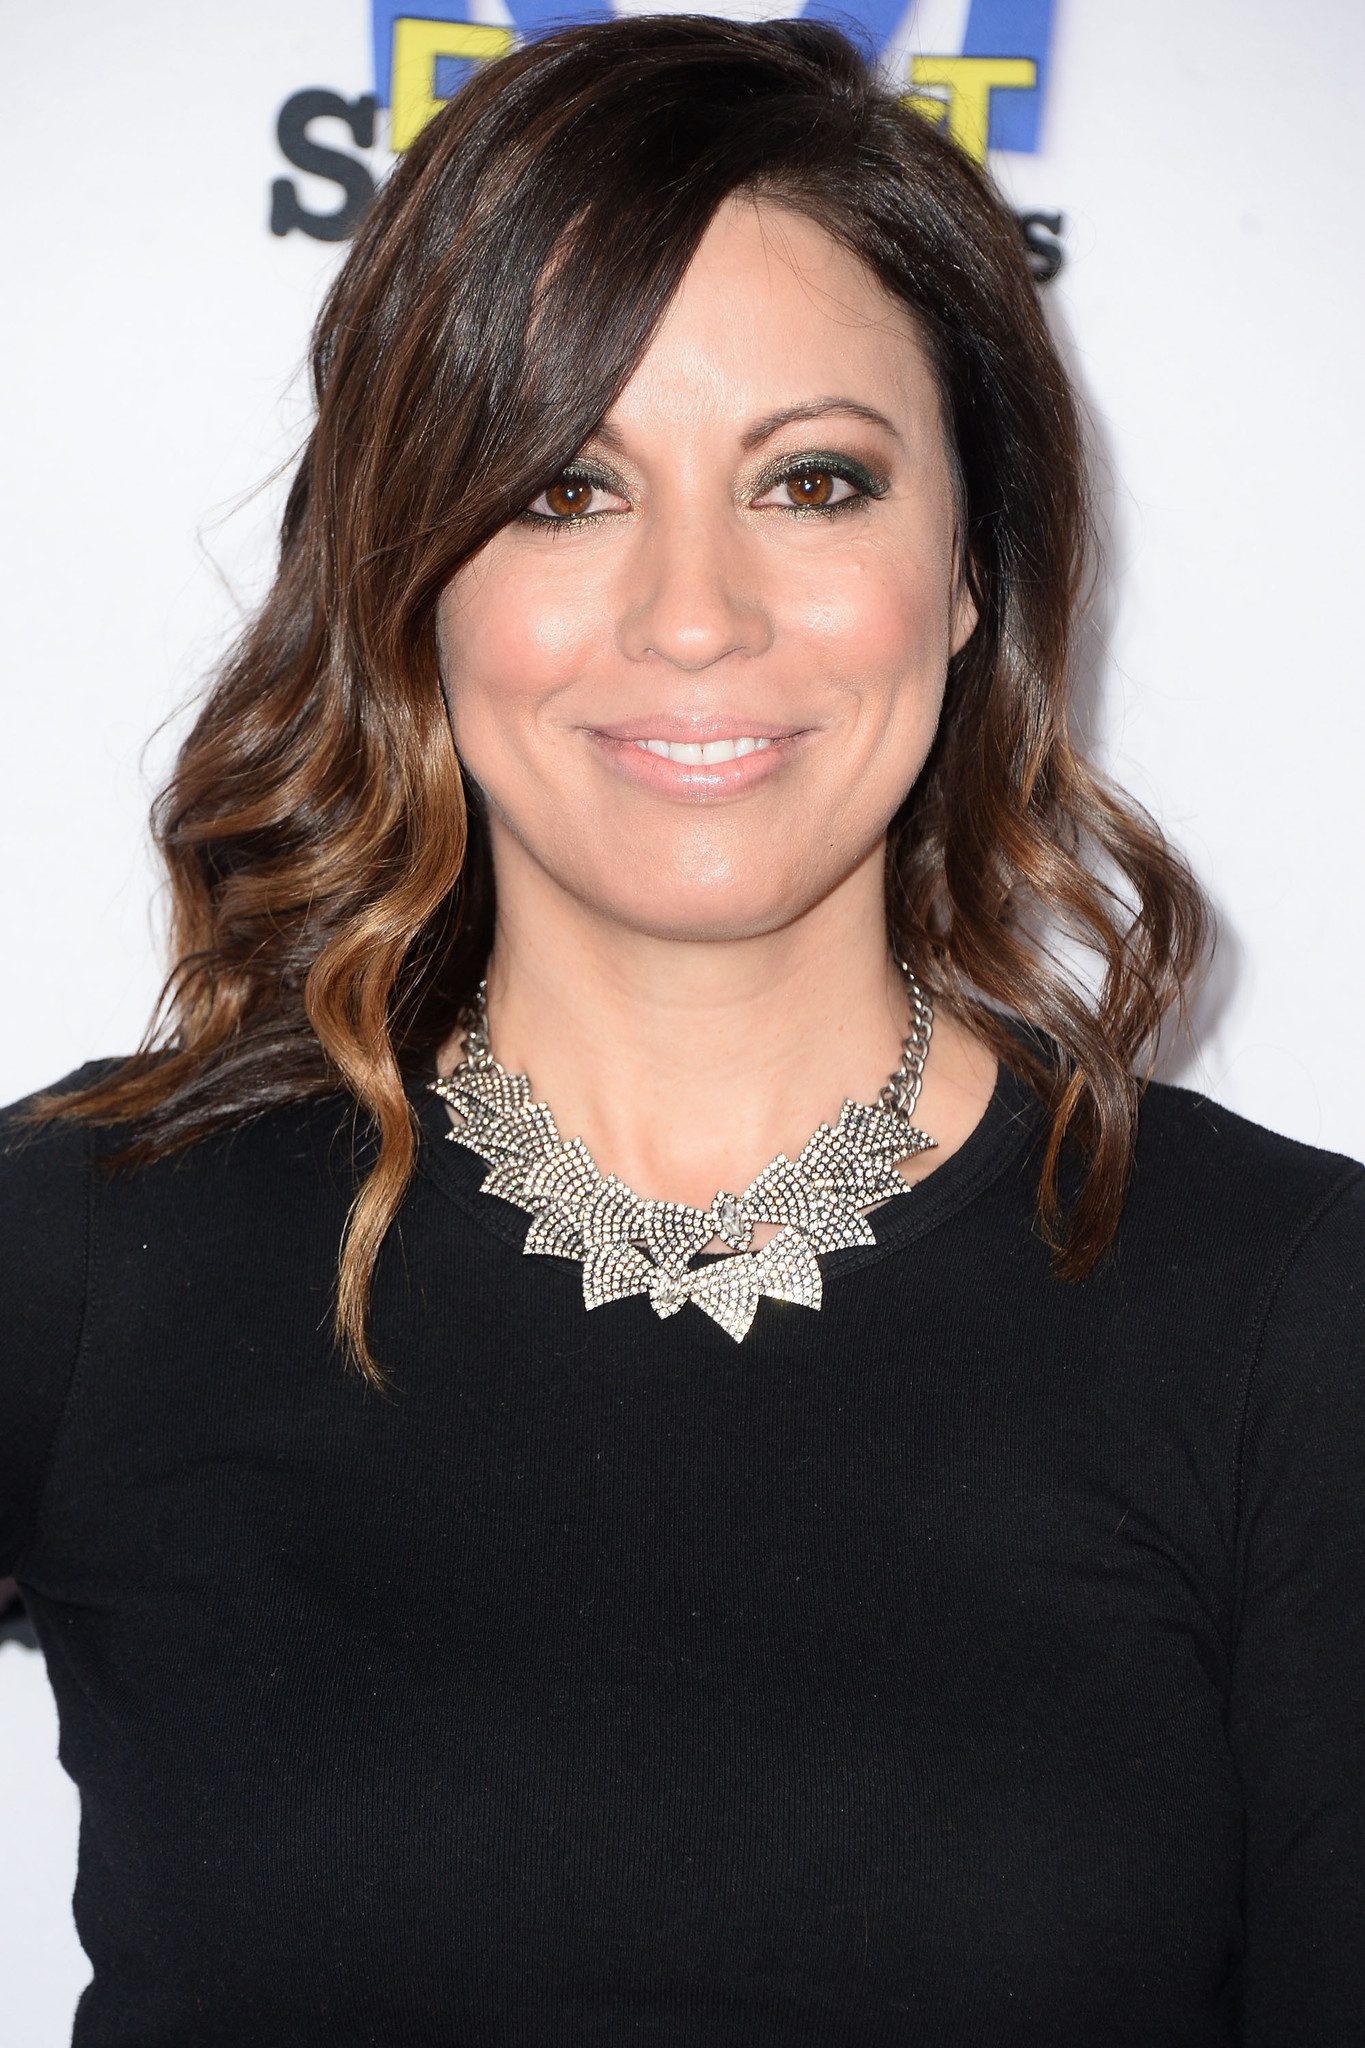 kay cannon bechloekay cannon birthday, kay cannon, kay cannon age, kay cannon twitter, kay cannon biography, kay cannon pitch perfect 3, kay cannon net worth, kay cannon jason sudeikis, kay cannon imdb, kay cannon instagram, kay cannon pitch perfect 2, kay cannon jason, kay cannon divorce, kay cannon lewis university, kay cannon and eben russell, kay cannon bechloe, kay cannon netflix, kay cannon coach, kay cannon images